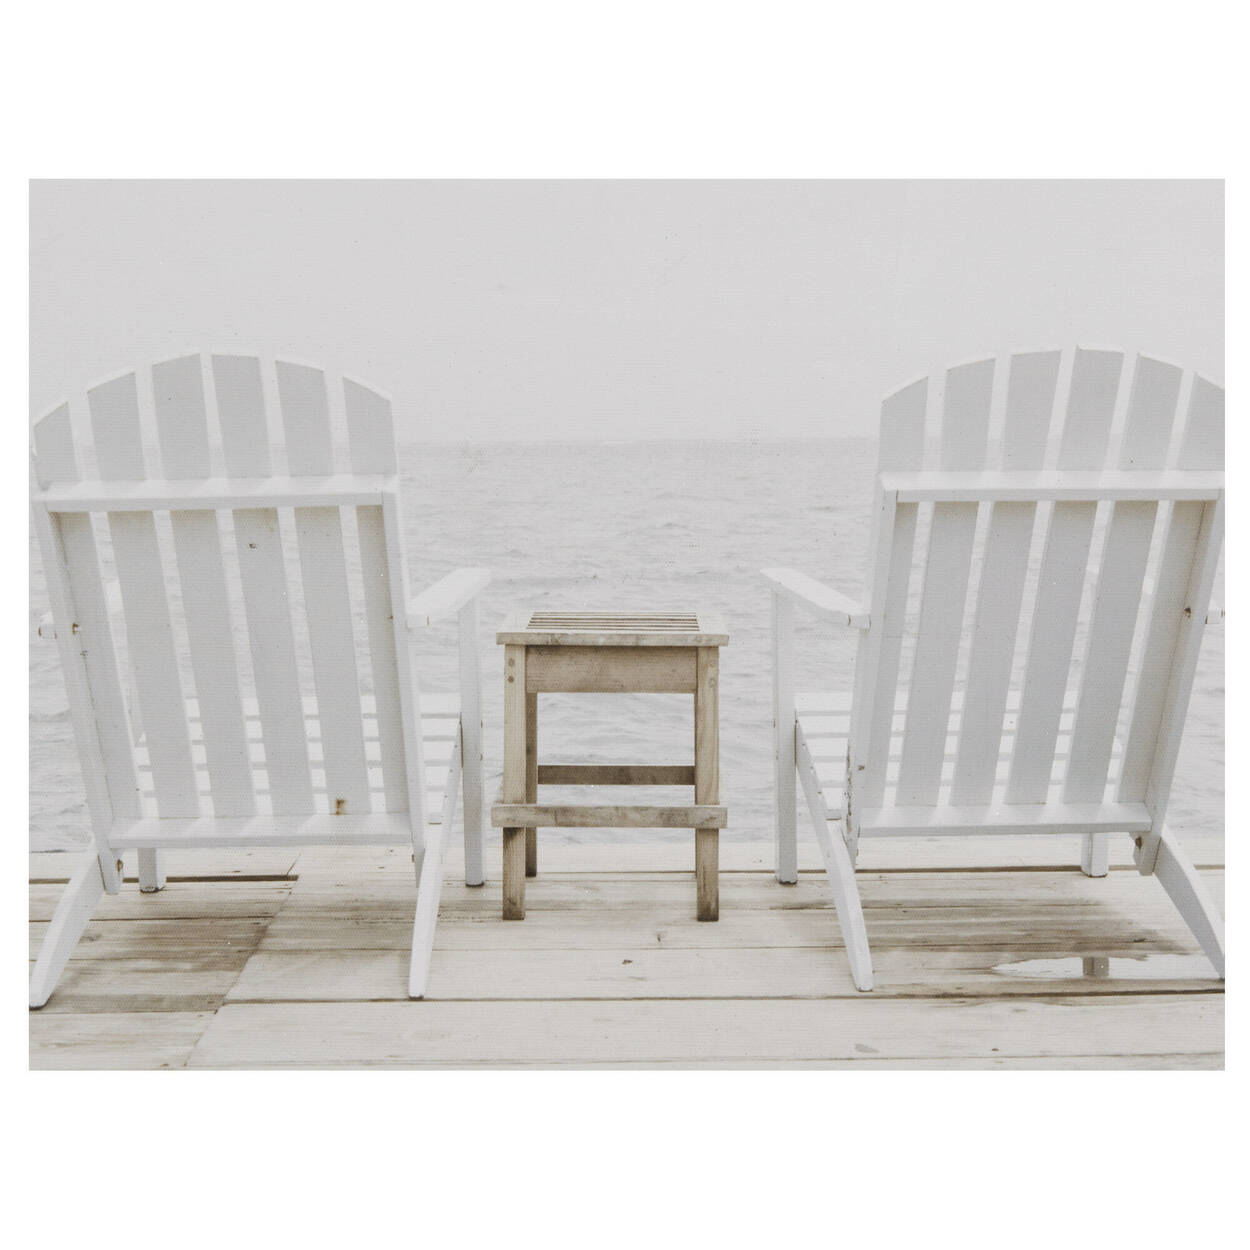 Adirondack Chairs on Dock Printed Canvas